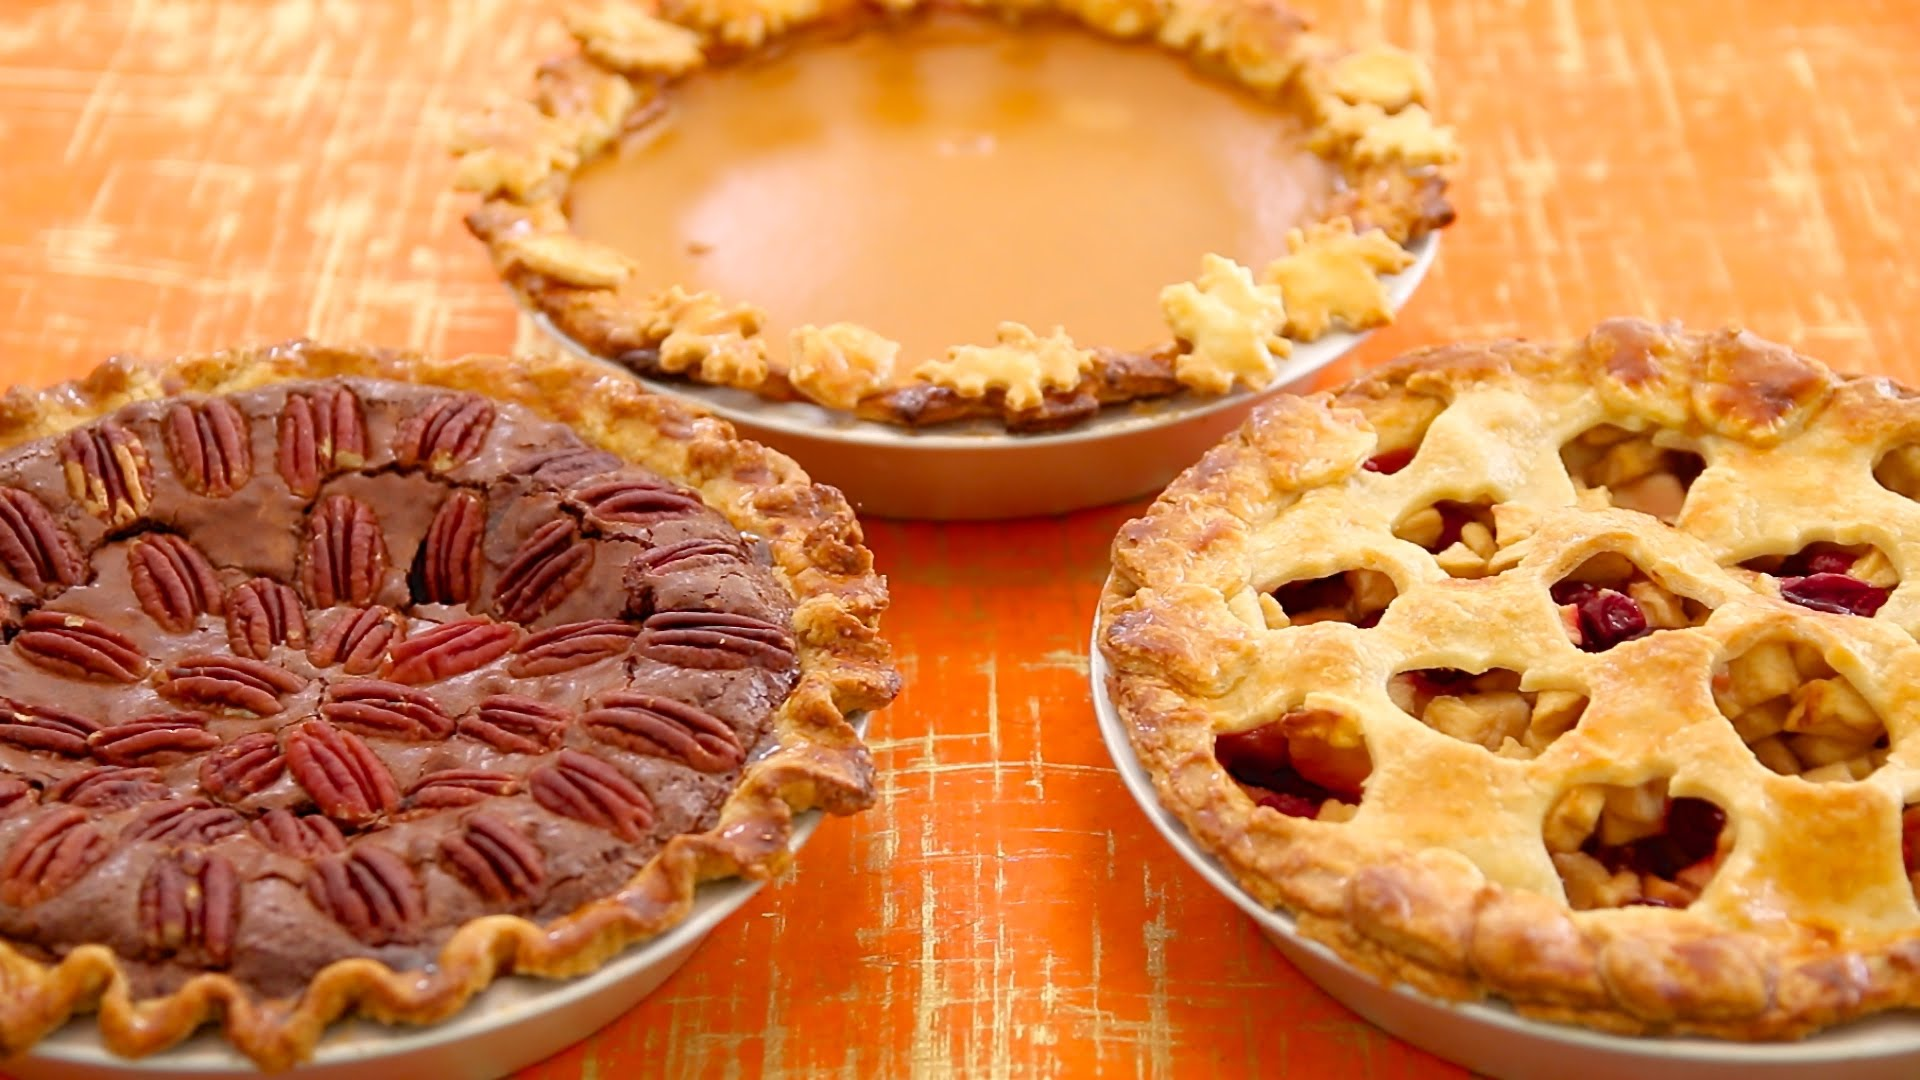 Wonderful Thanksgiving Dessert For These 3 Homemade Pie Recipes , Pumpkin, Apple And Pecan